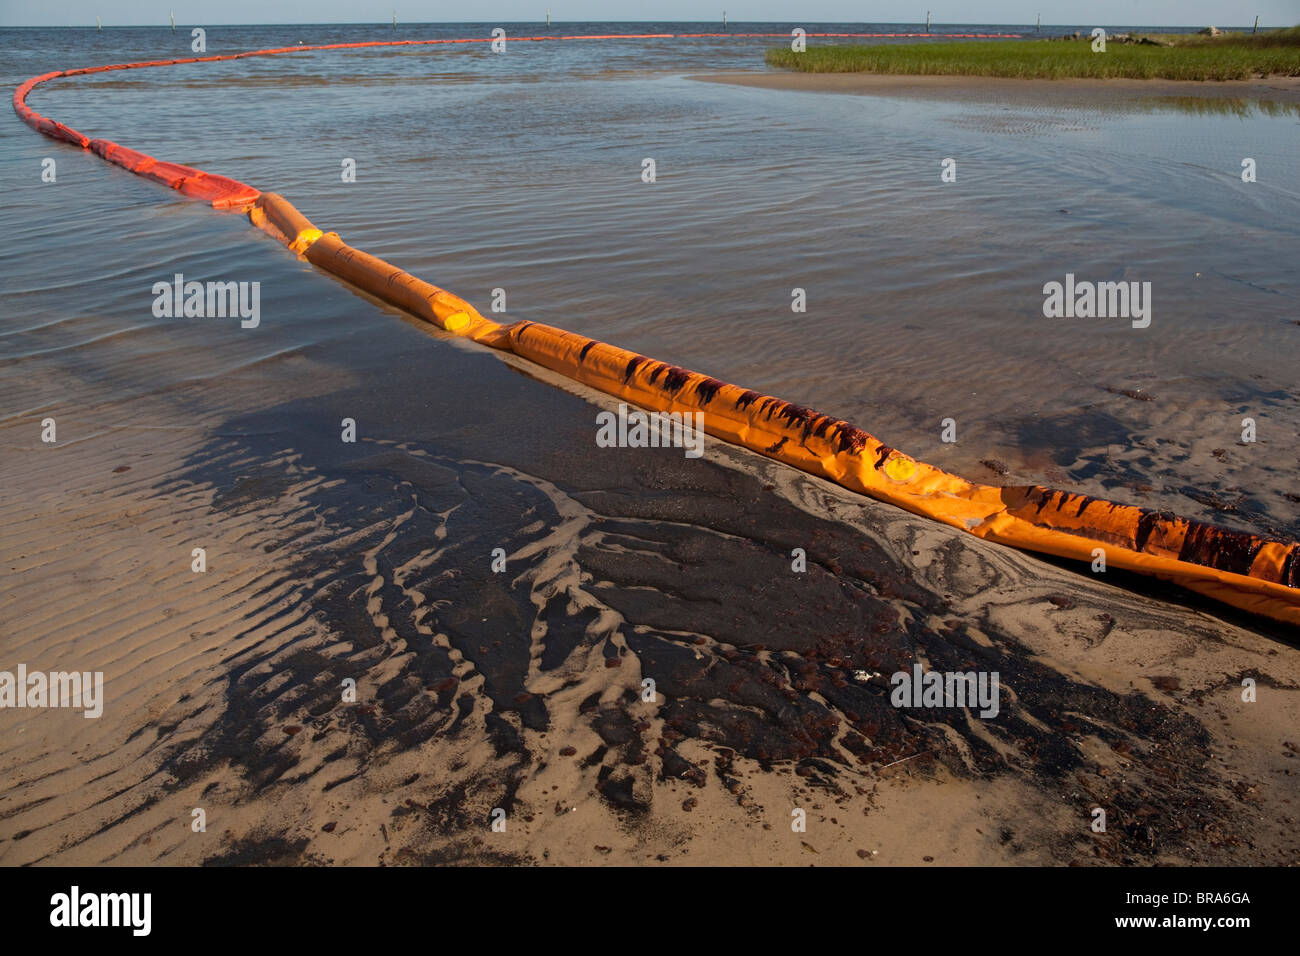 Oil from the BP Deepwater-Horizon oil spill in the Gulf of Mexico covers the shore in Waveland, Mississippi. - Stock Image